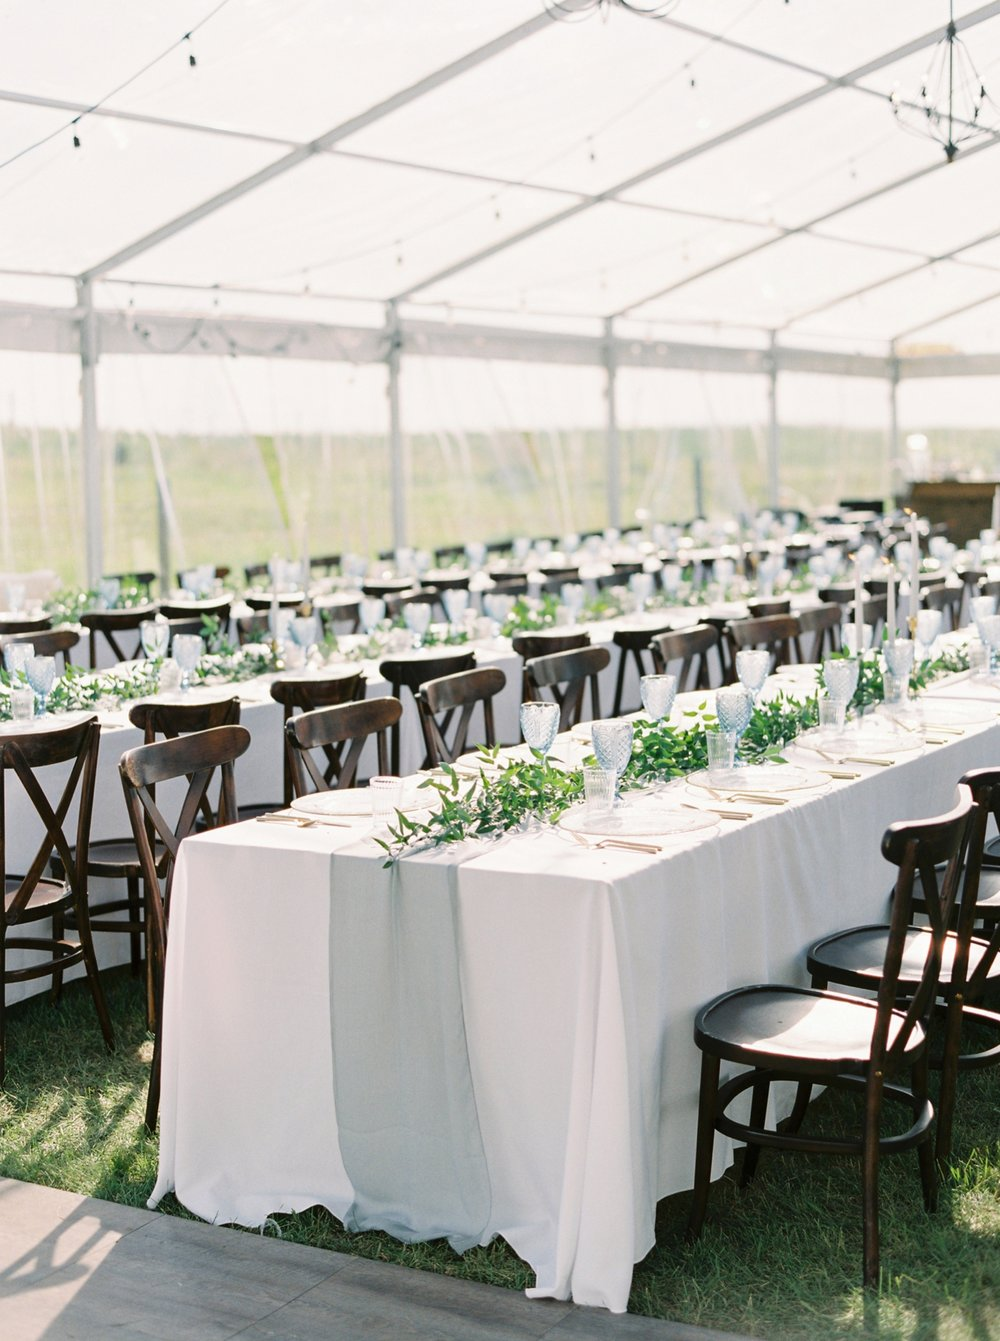 Calgary wedding photographers | The Gathered Farm Wedding | Justine milton fine art film photographer | tent wedding decor